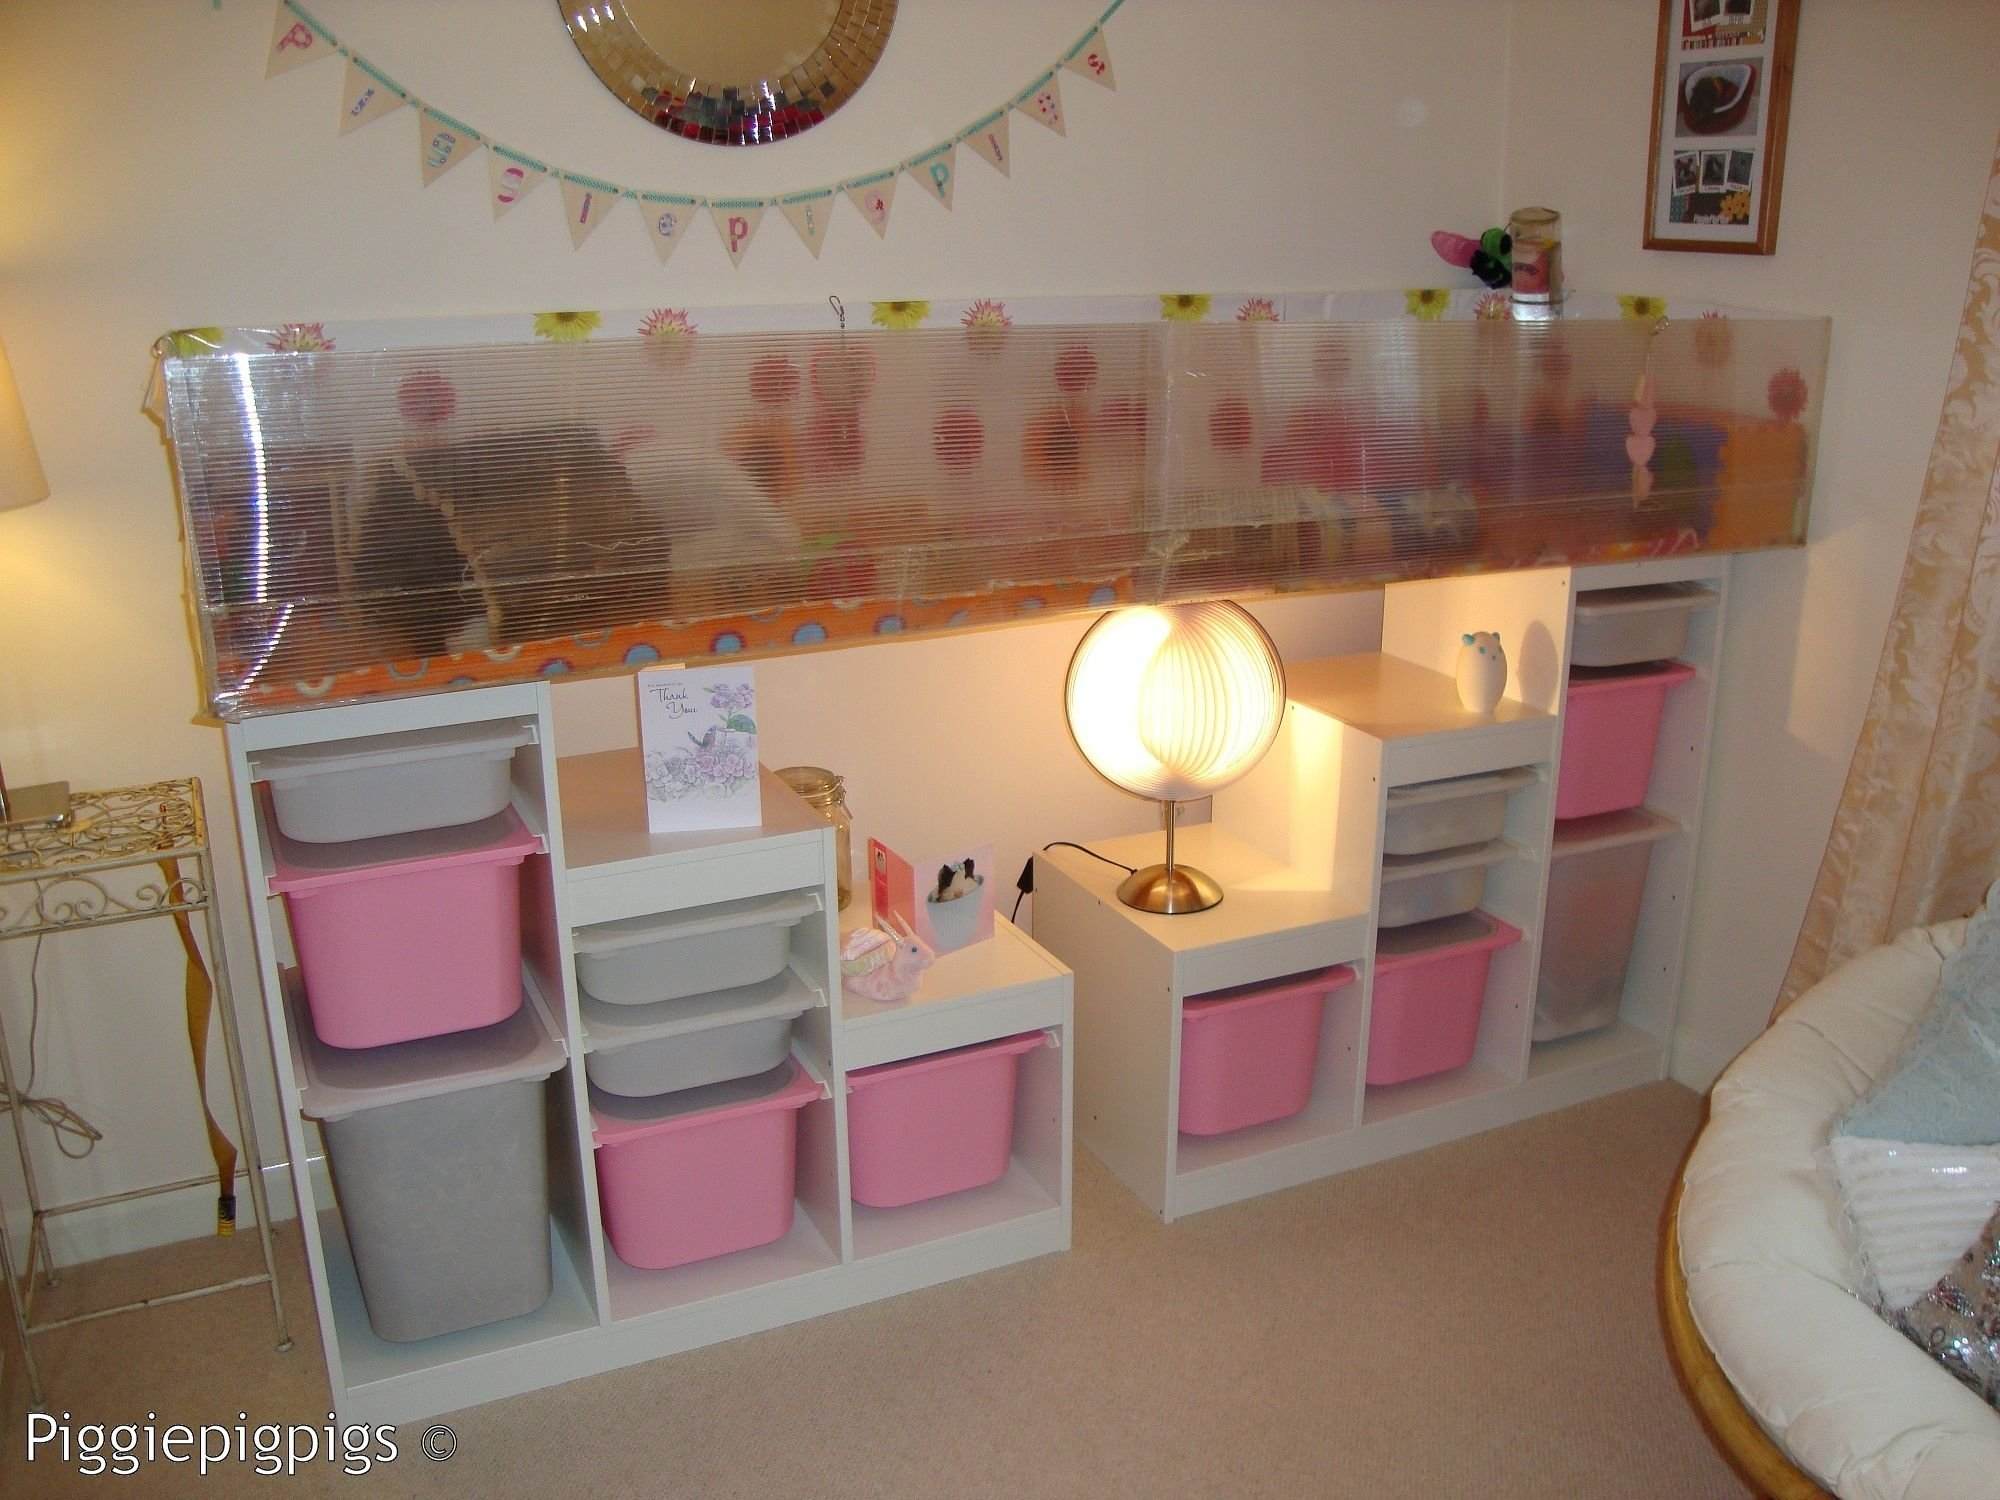 10 Ideal Homemade Guinea Pig Cage Ideas awesome ideas for guinea pig hutch and cages diy guinea pig cage 1 2020